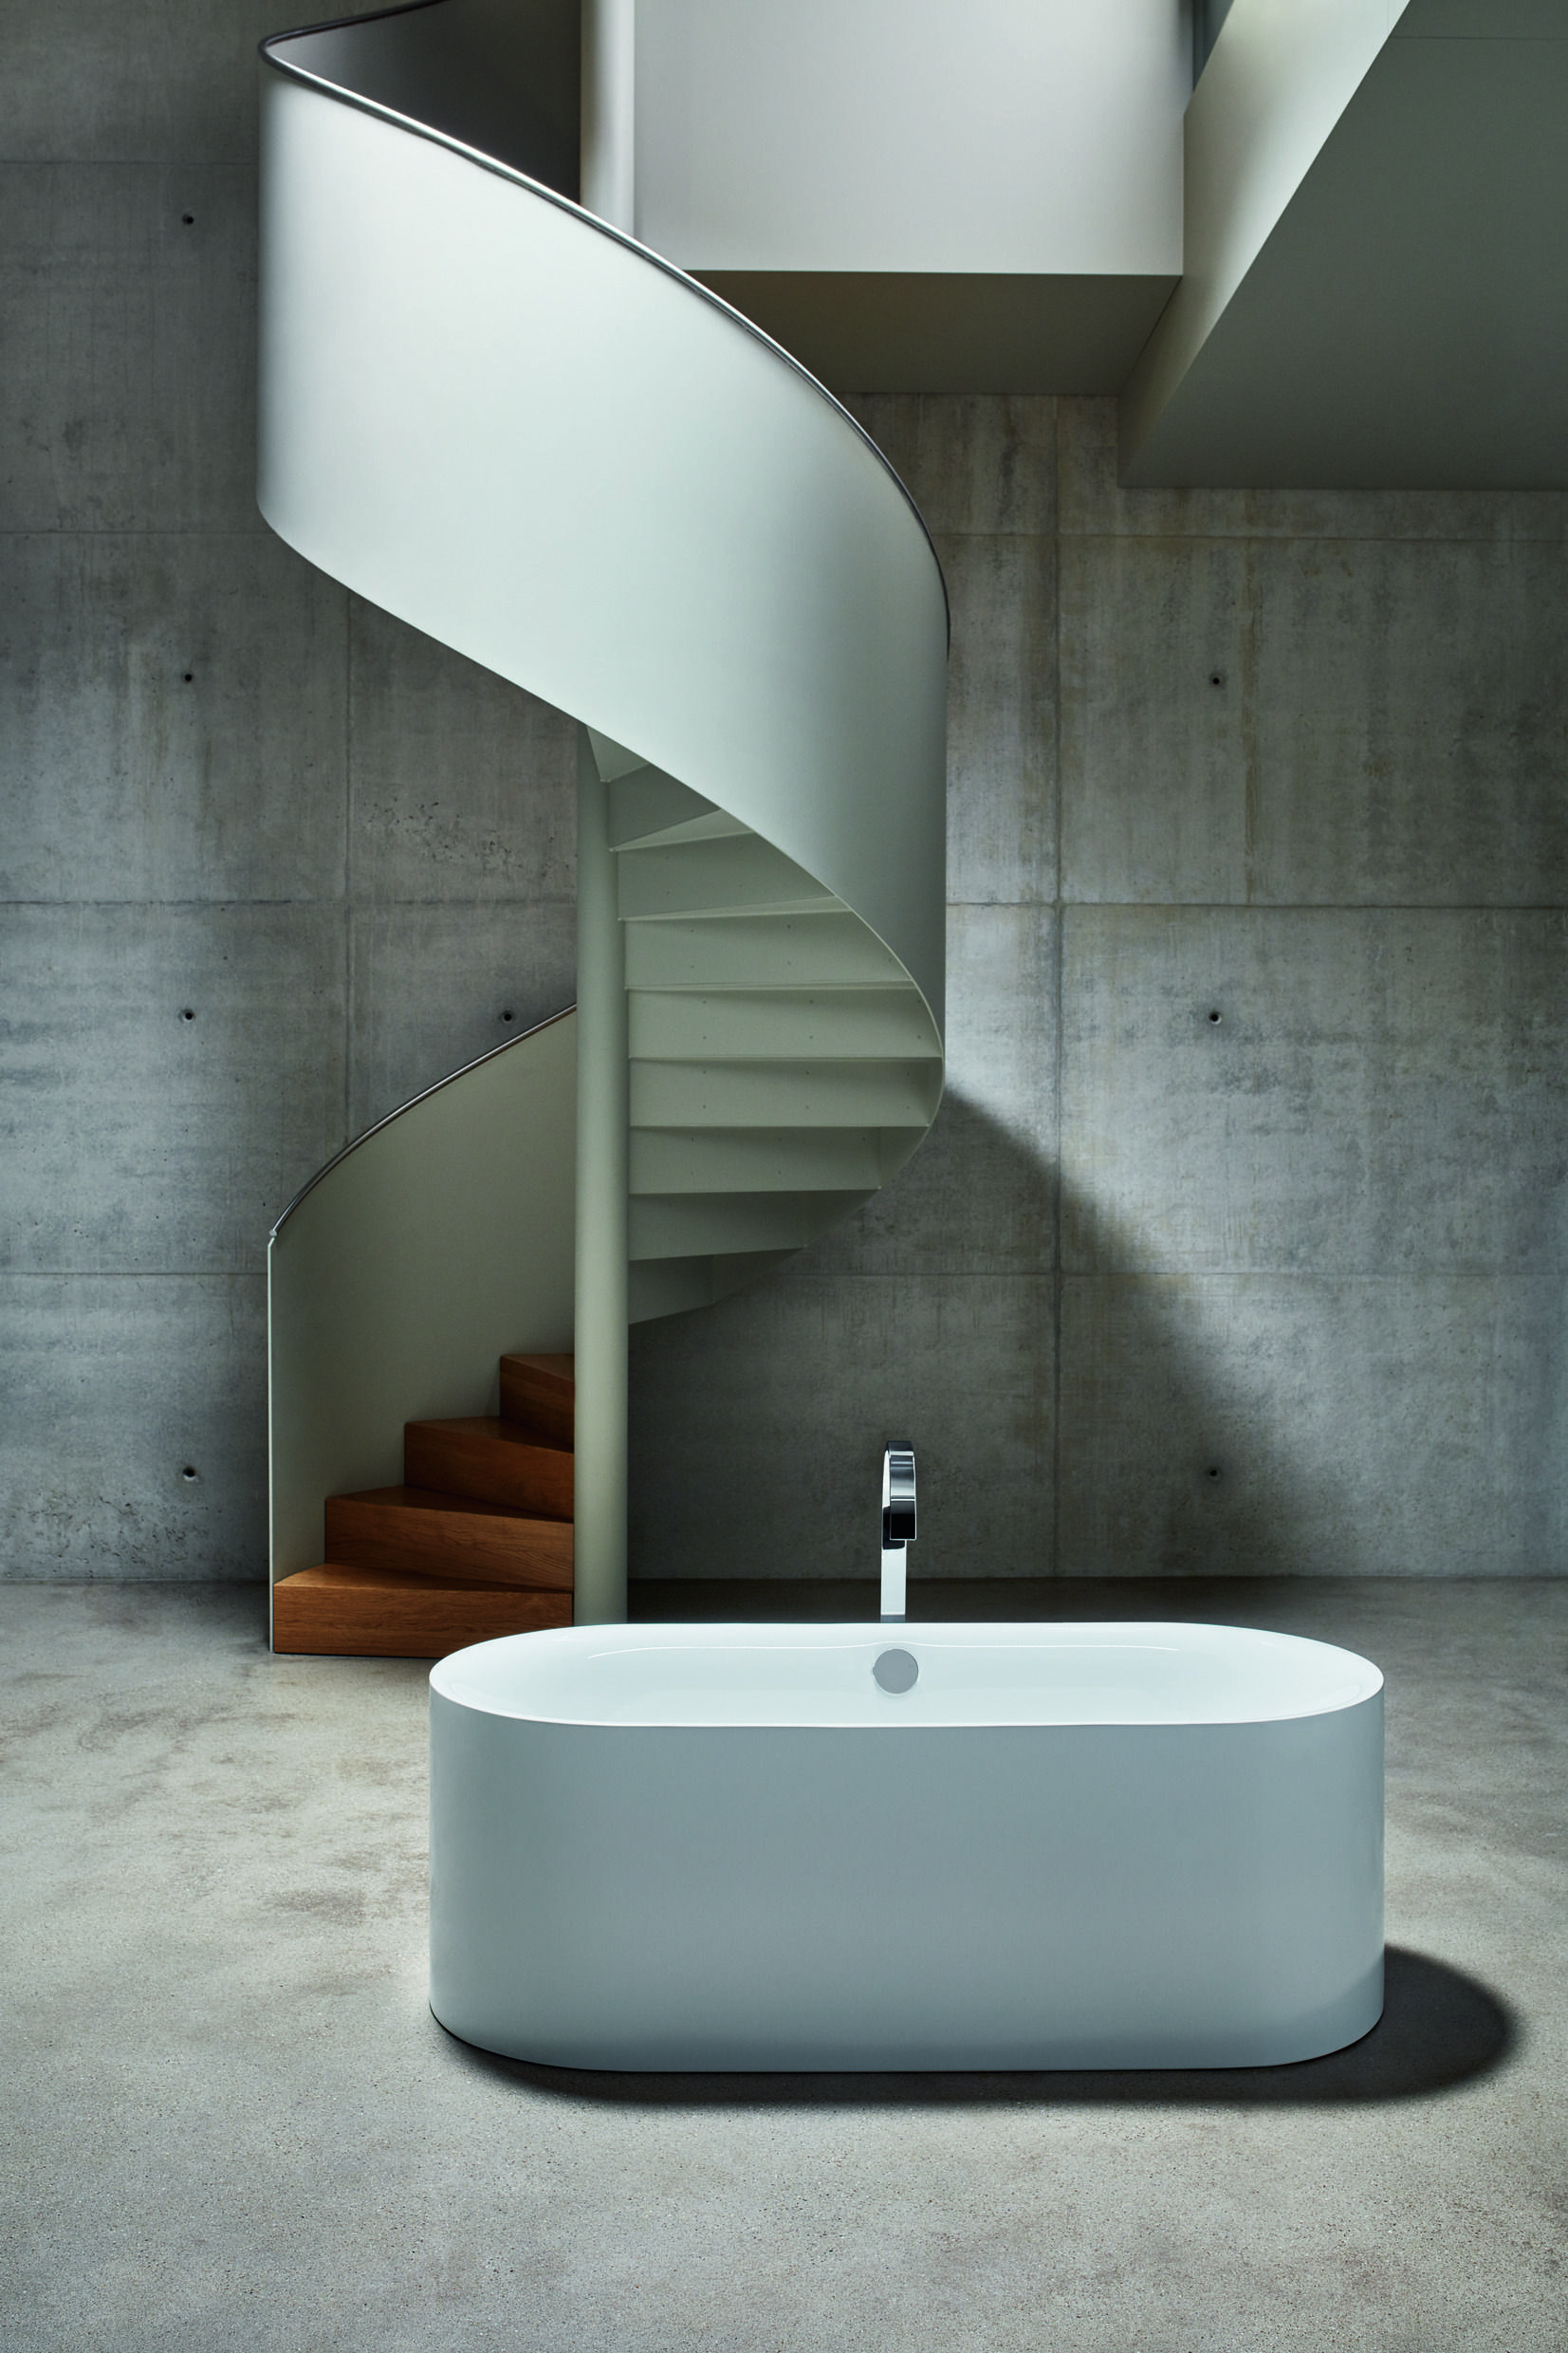 Bettelux Oval Strong Charismatic Charming This Is The Sort Of Bath That Would Buy You Flowers Any Day Of Round Stairs Bathroom Design Staircase Wall Decor